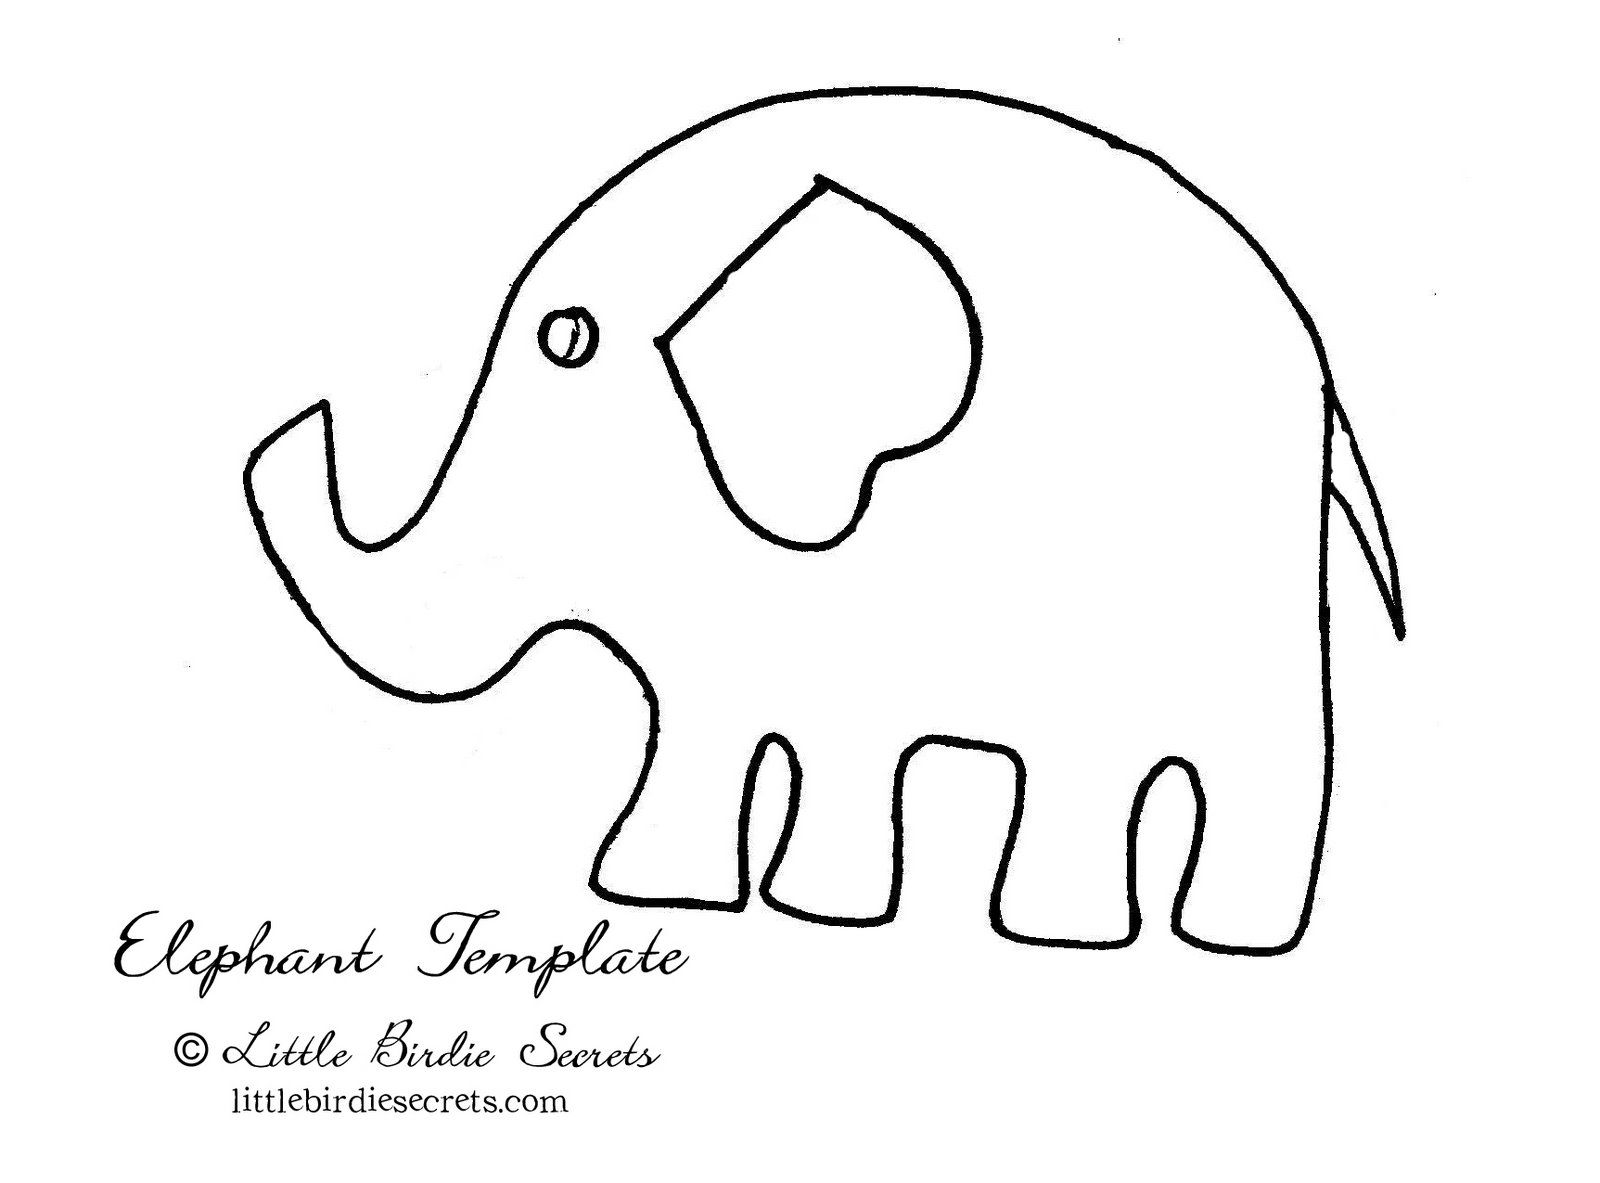 Elephant+Template+For+Blog.Jpg] | Diy&Crafts | Pinterest | Onesie